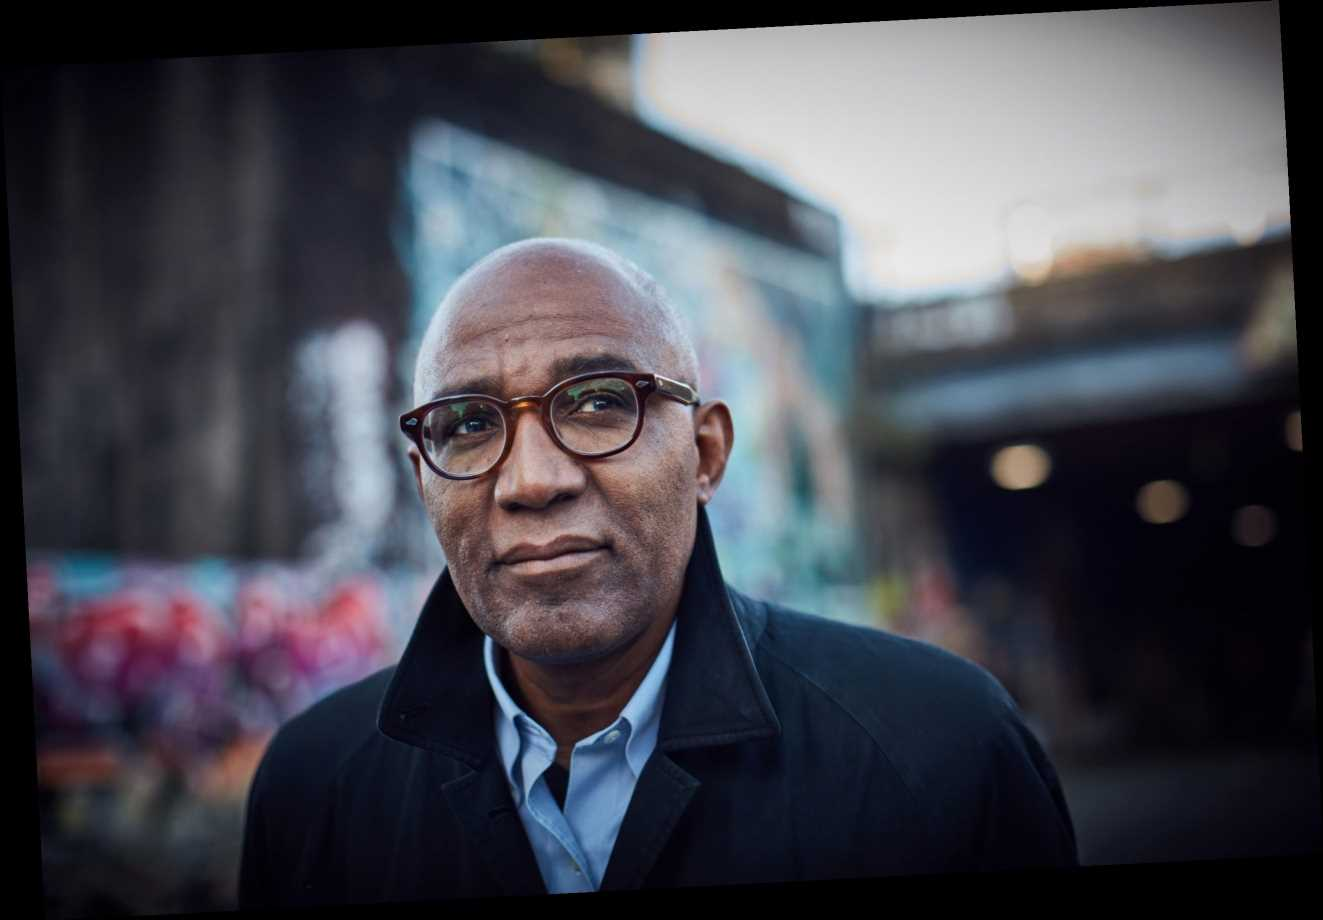 Labour suspend equality champion Trevor Phillips over Islamaphobia claims – The Sun